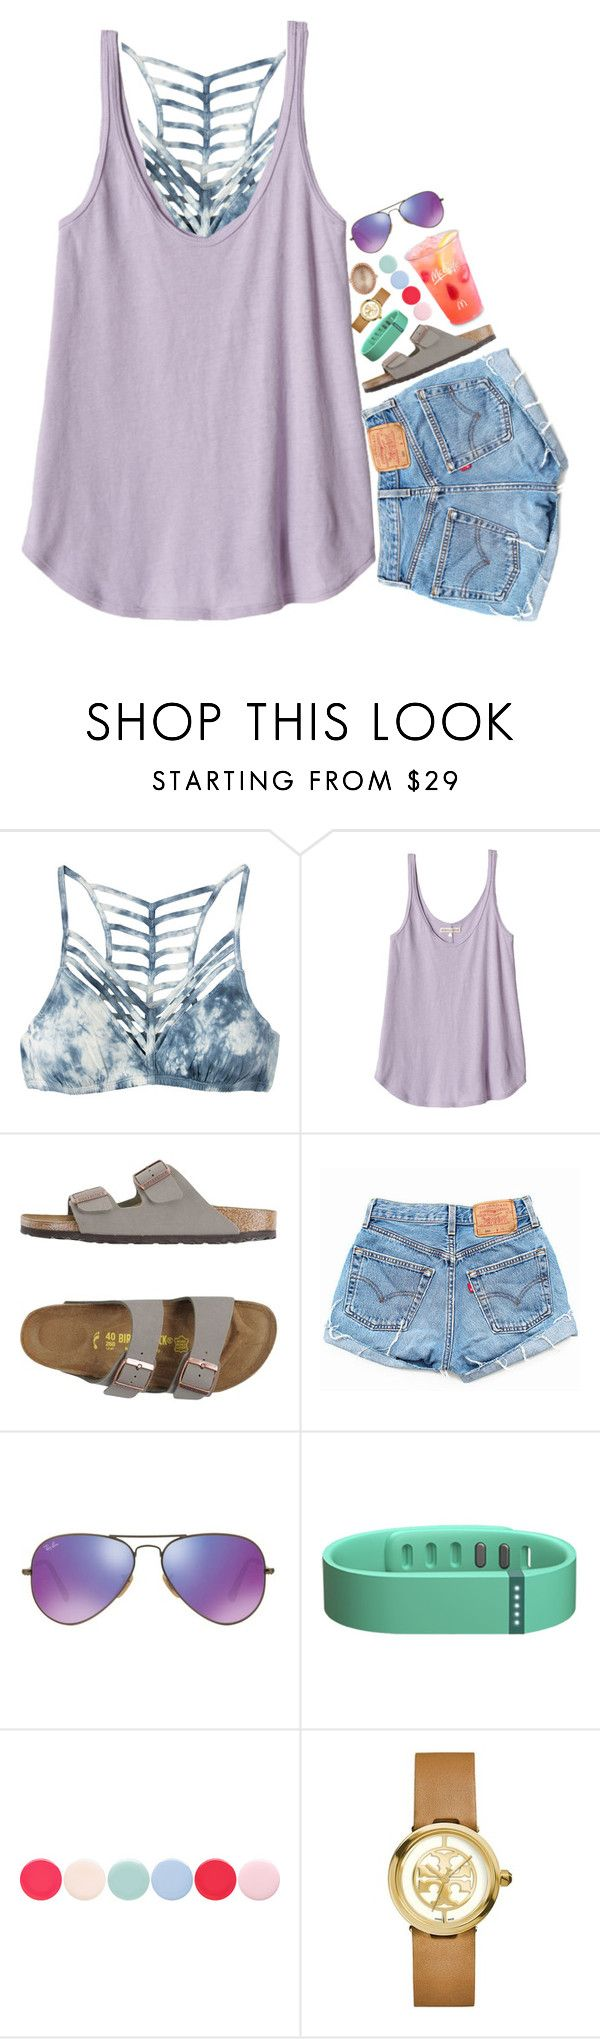 """birksssssss"" by simply-lilyy ❤ liked on Polyvore featuring RVCA, Rebecca Taylor, Birkenstock, Levi's, Ray-Ban, Fitbit, Nails Inc., Tory Burch, Larkspur & Hawk and lilysmostliked"